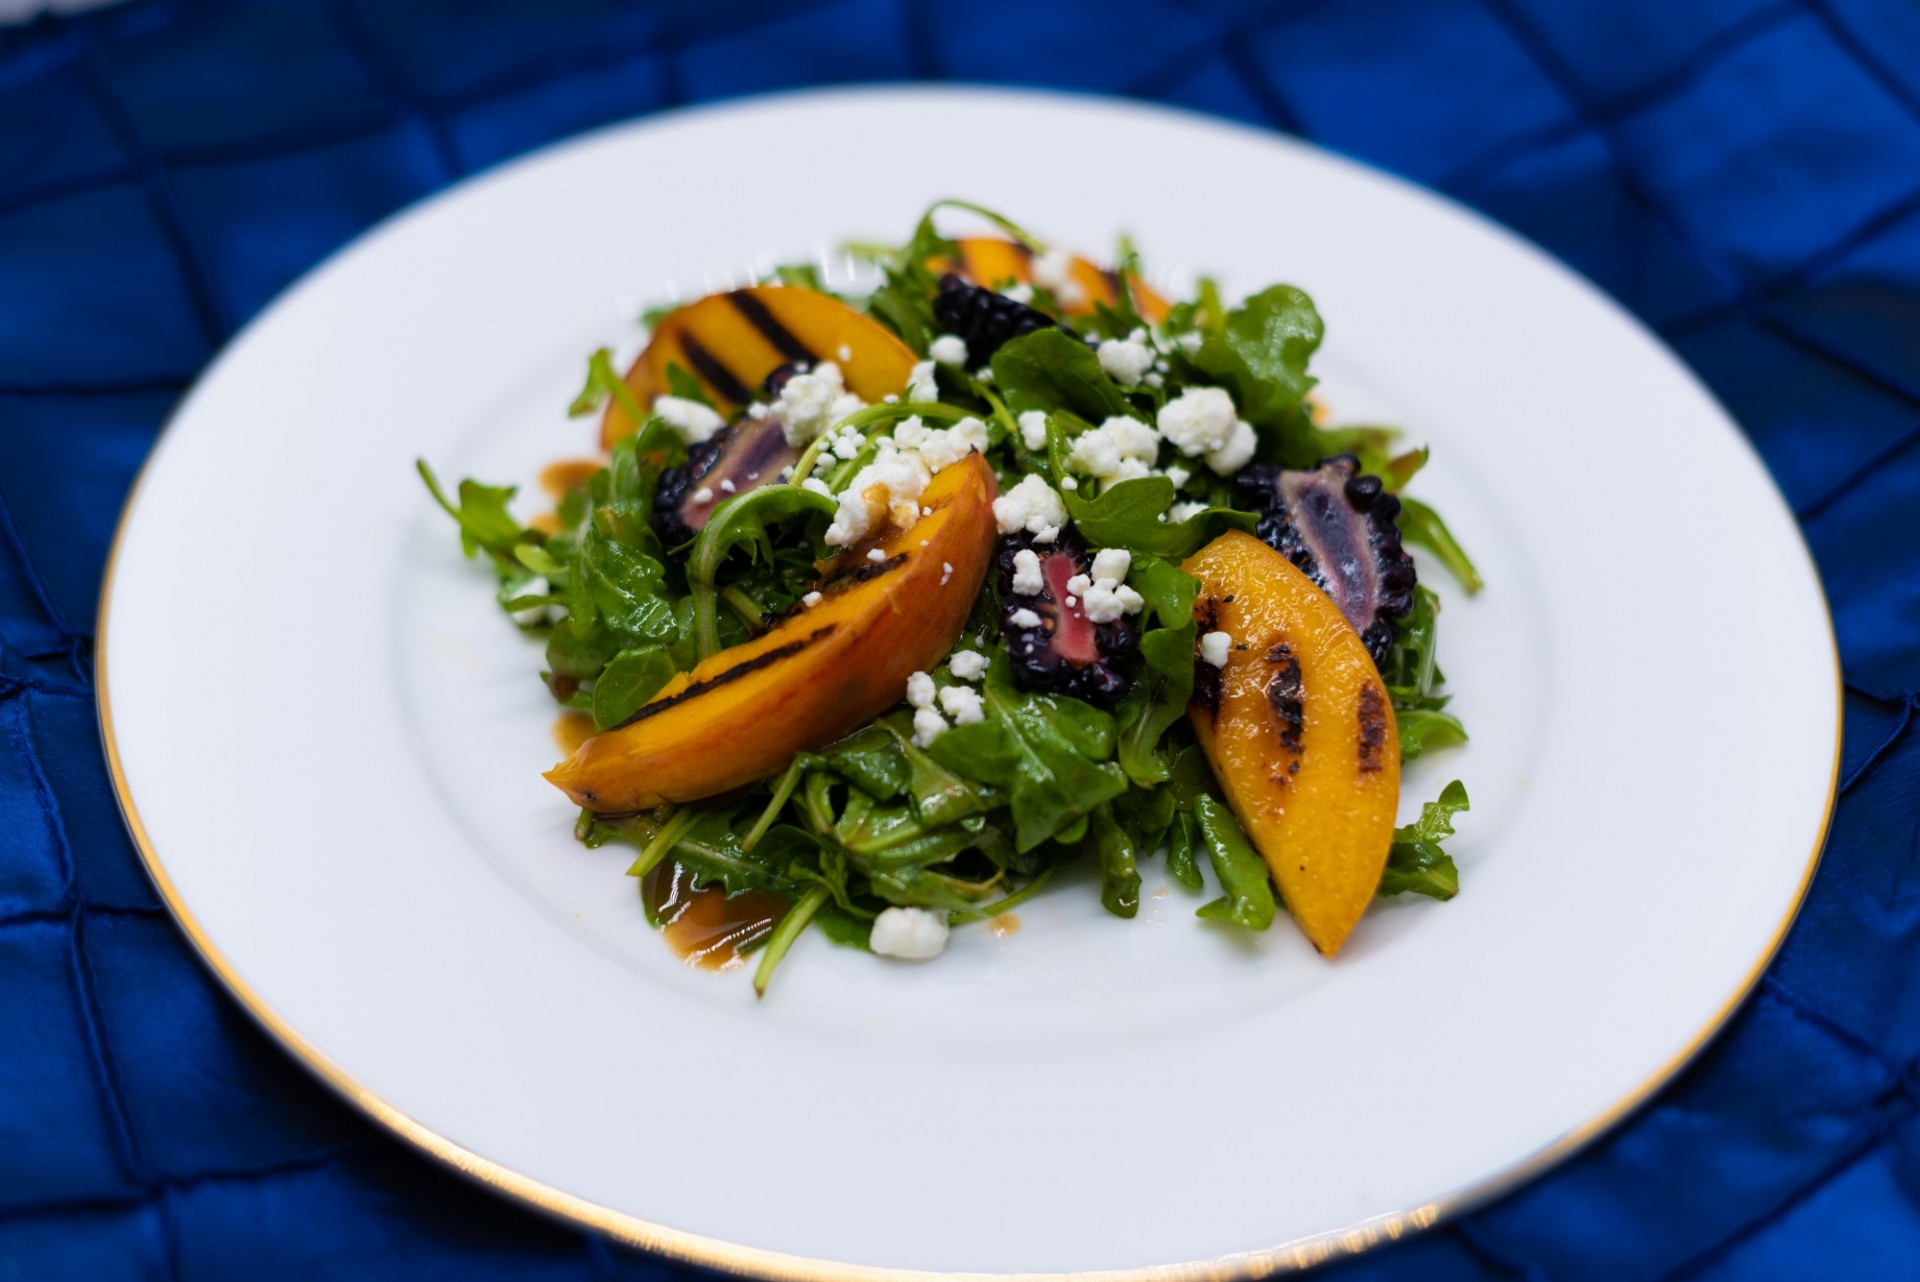 Grilled Peaches & Arugula Salad with Blackberries, Crumbled Goat Cheese, Balsamic Vinegar Dressing